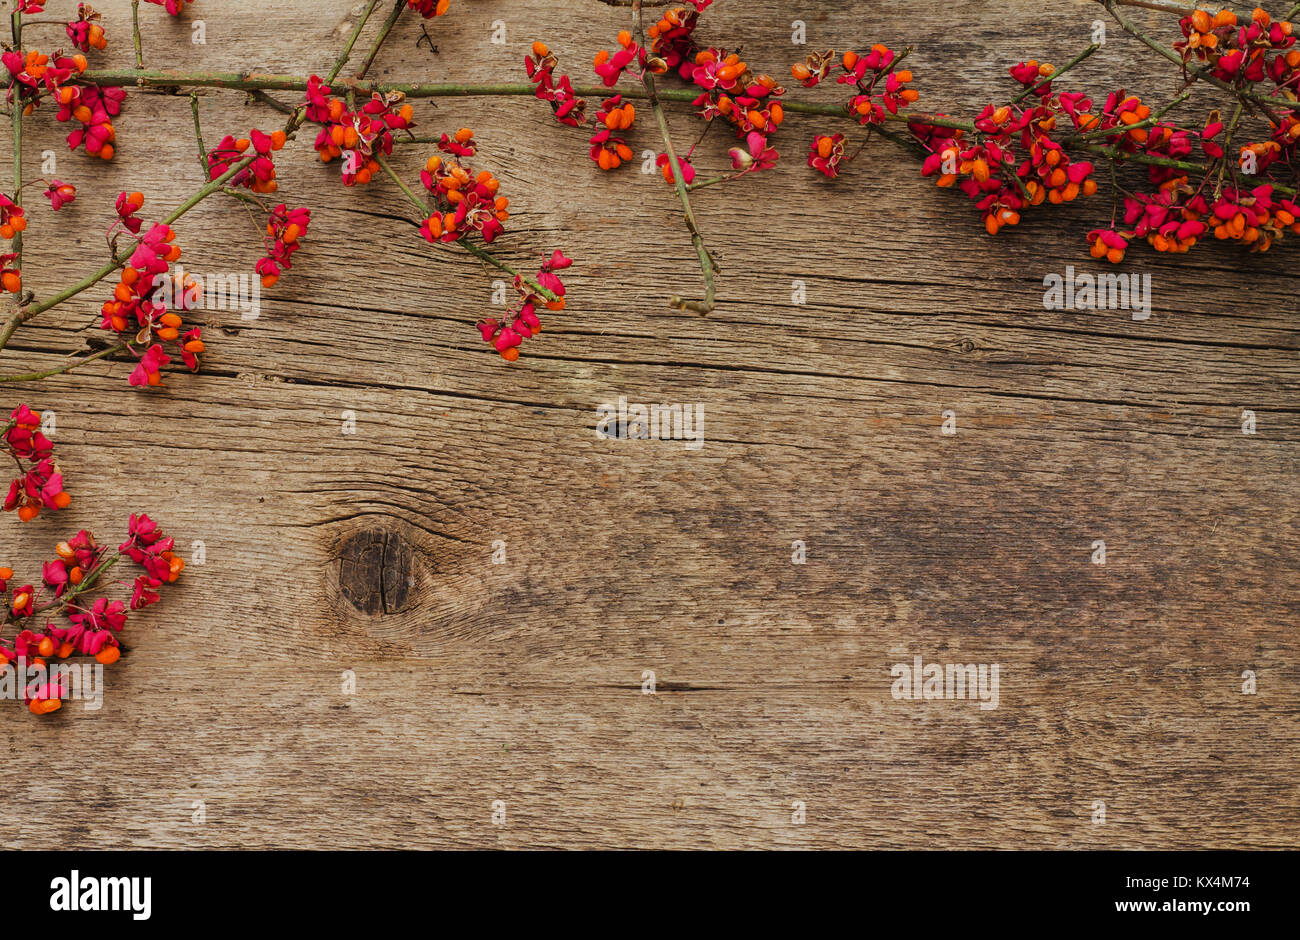 branch with red small flowers on a wooden background - Stock Image